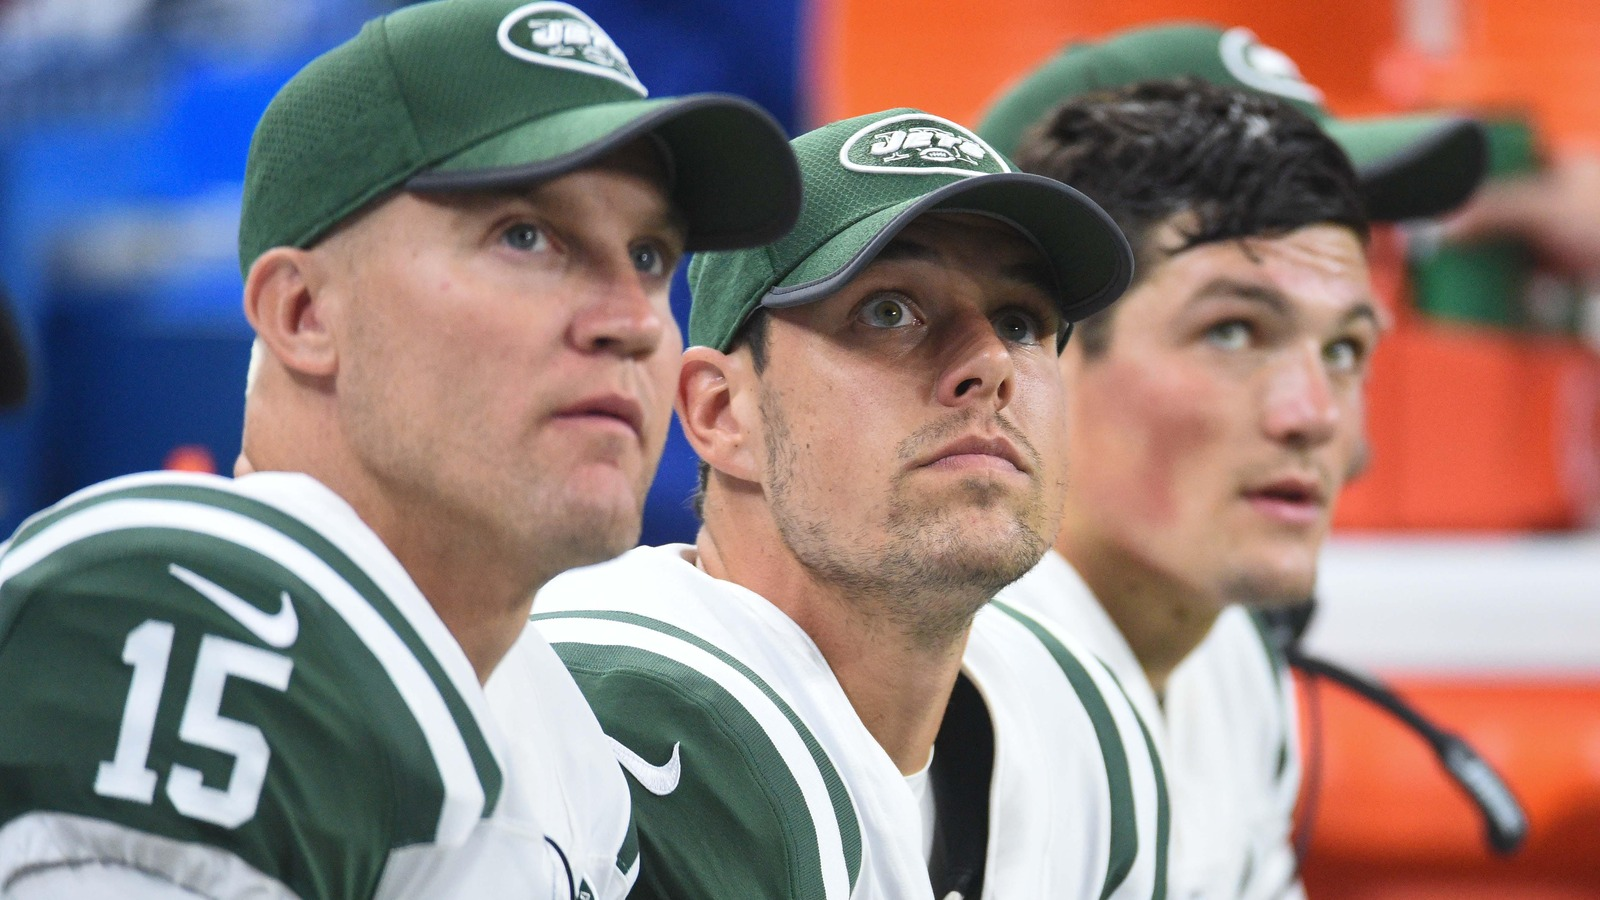 Given start at quarterback, Jets' Christian Hackenberg fails to take flight